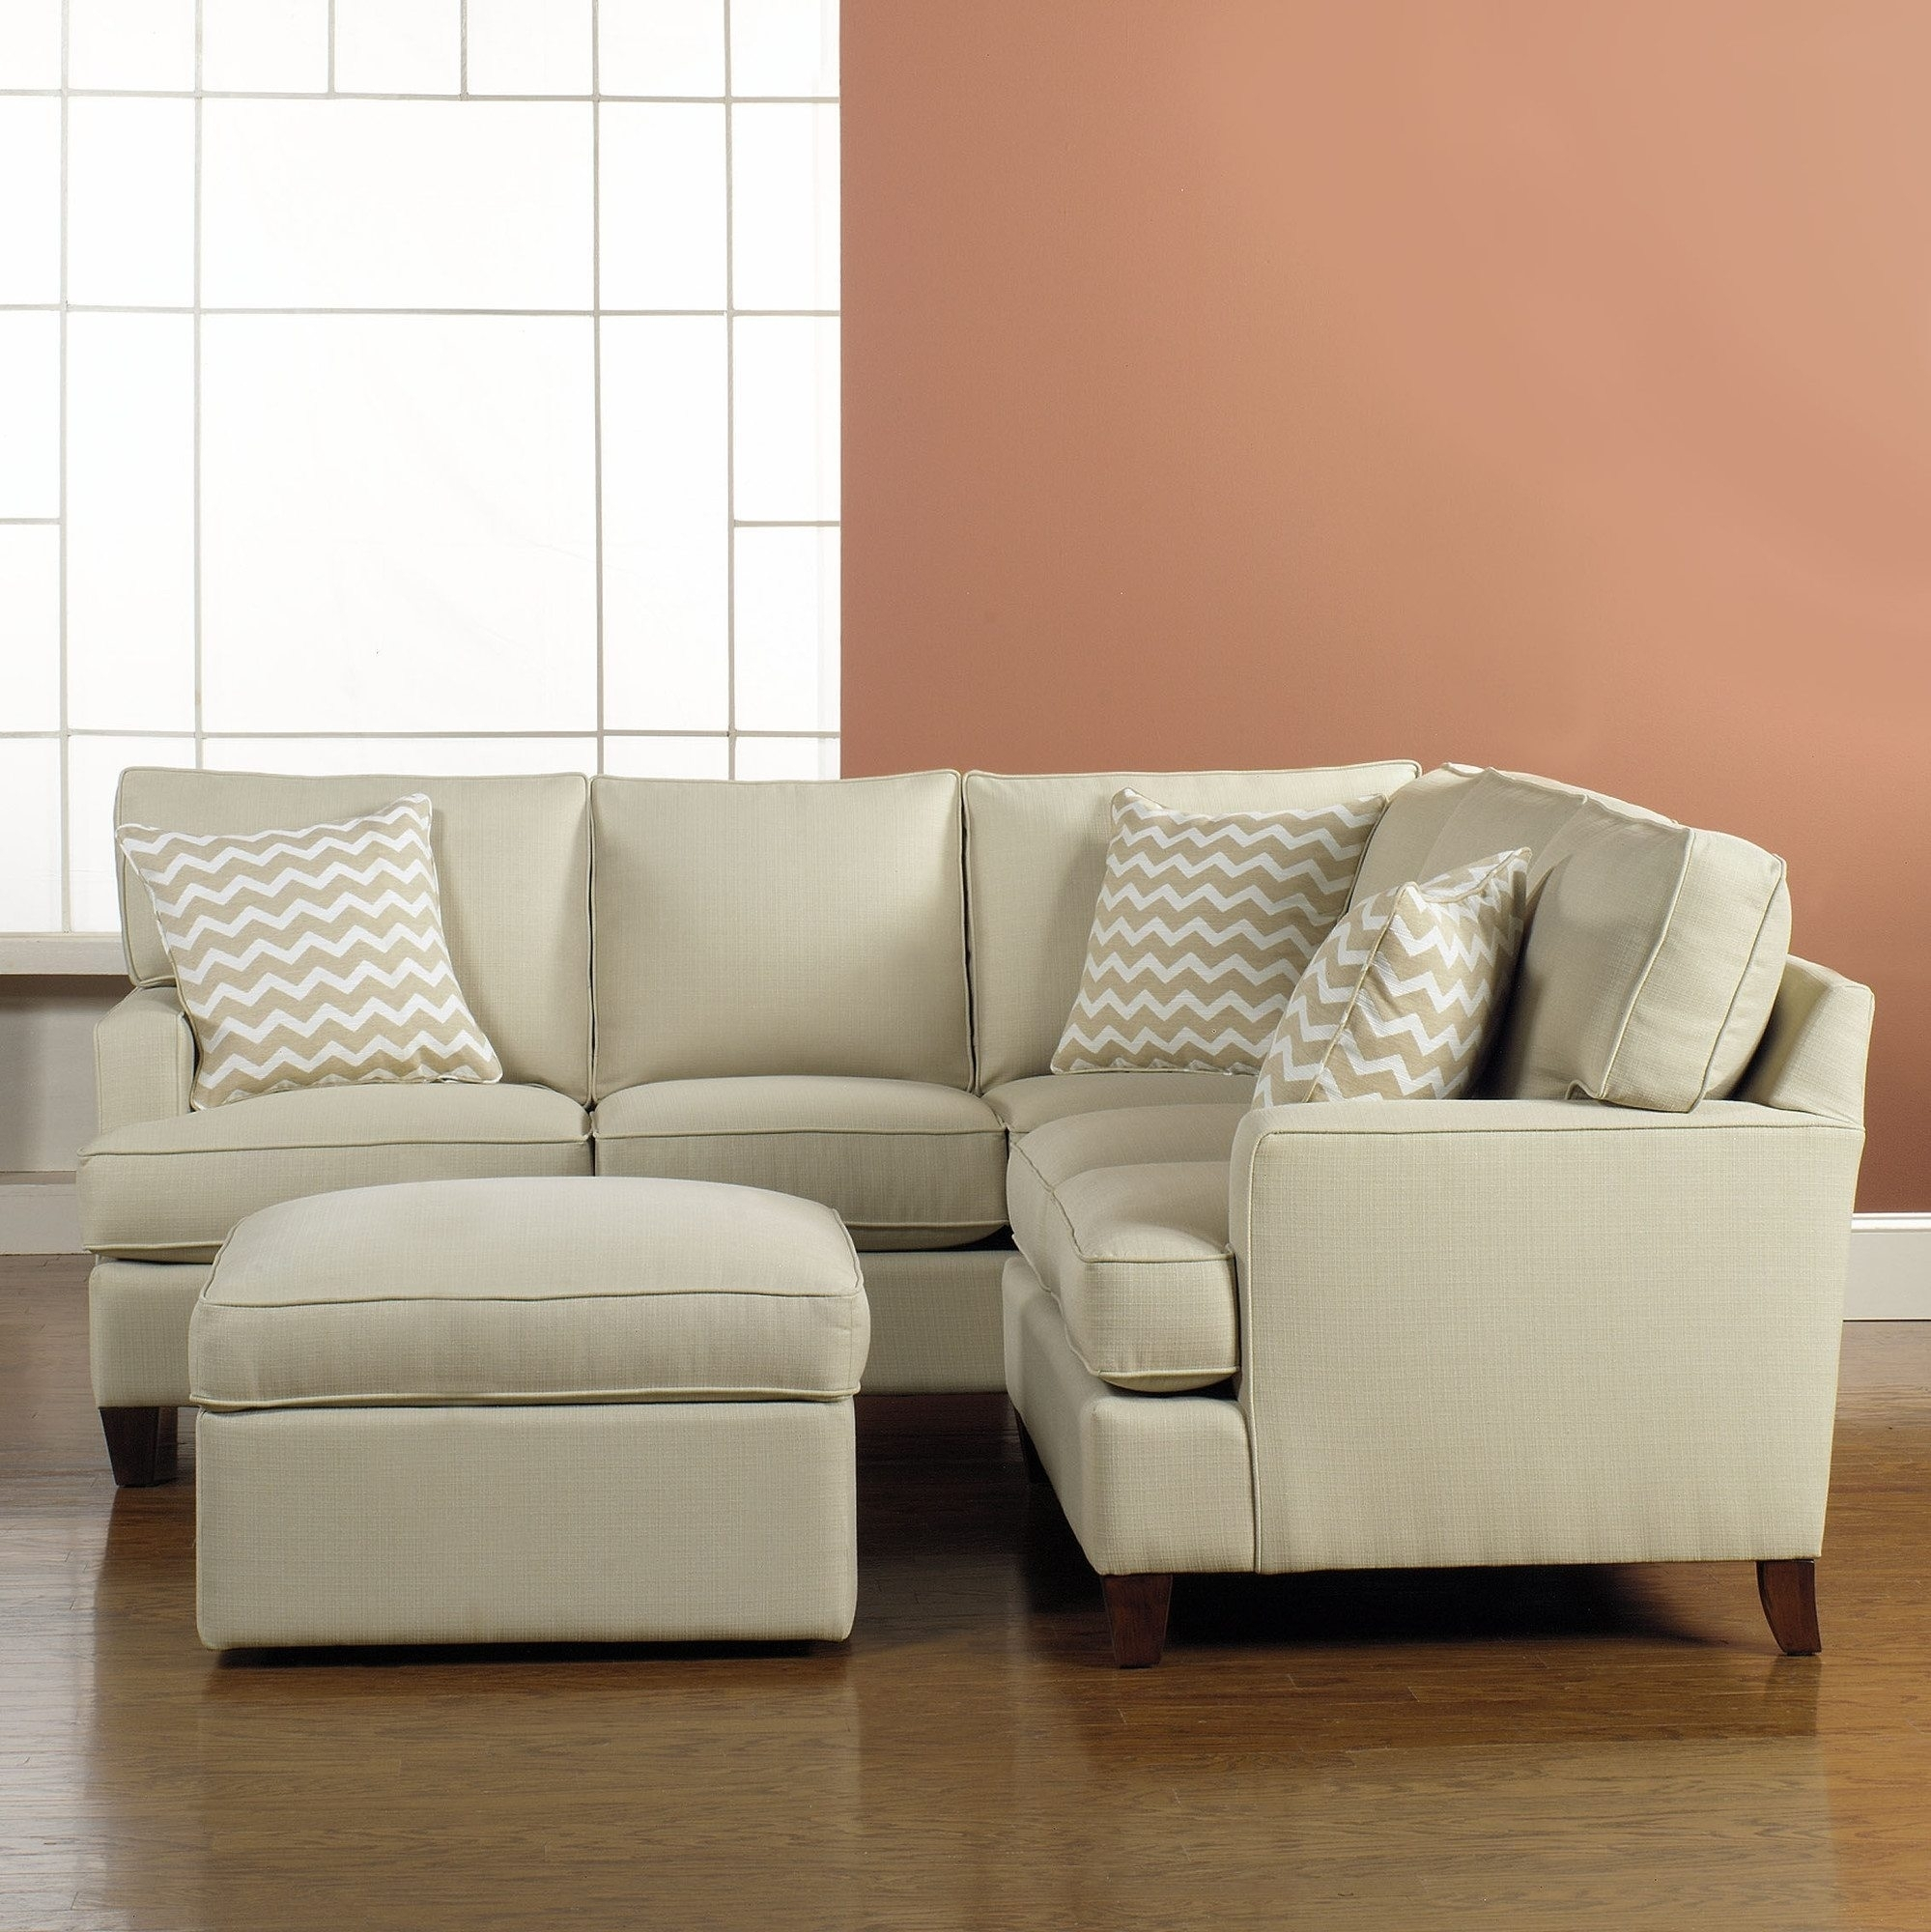 Collection Sectional Sofas Rochester Ny – Mediasupload Regarding Rochester Ny Sectional Sofas (View 5 of 10)